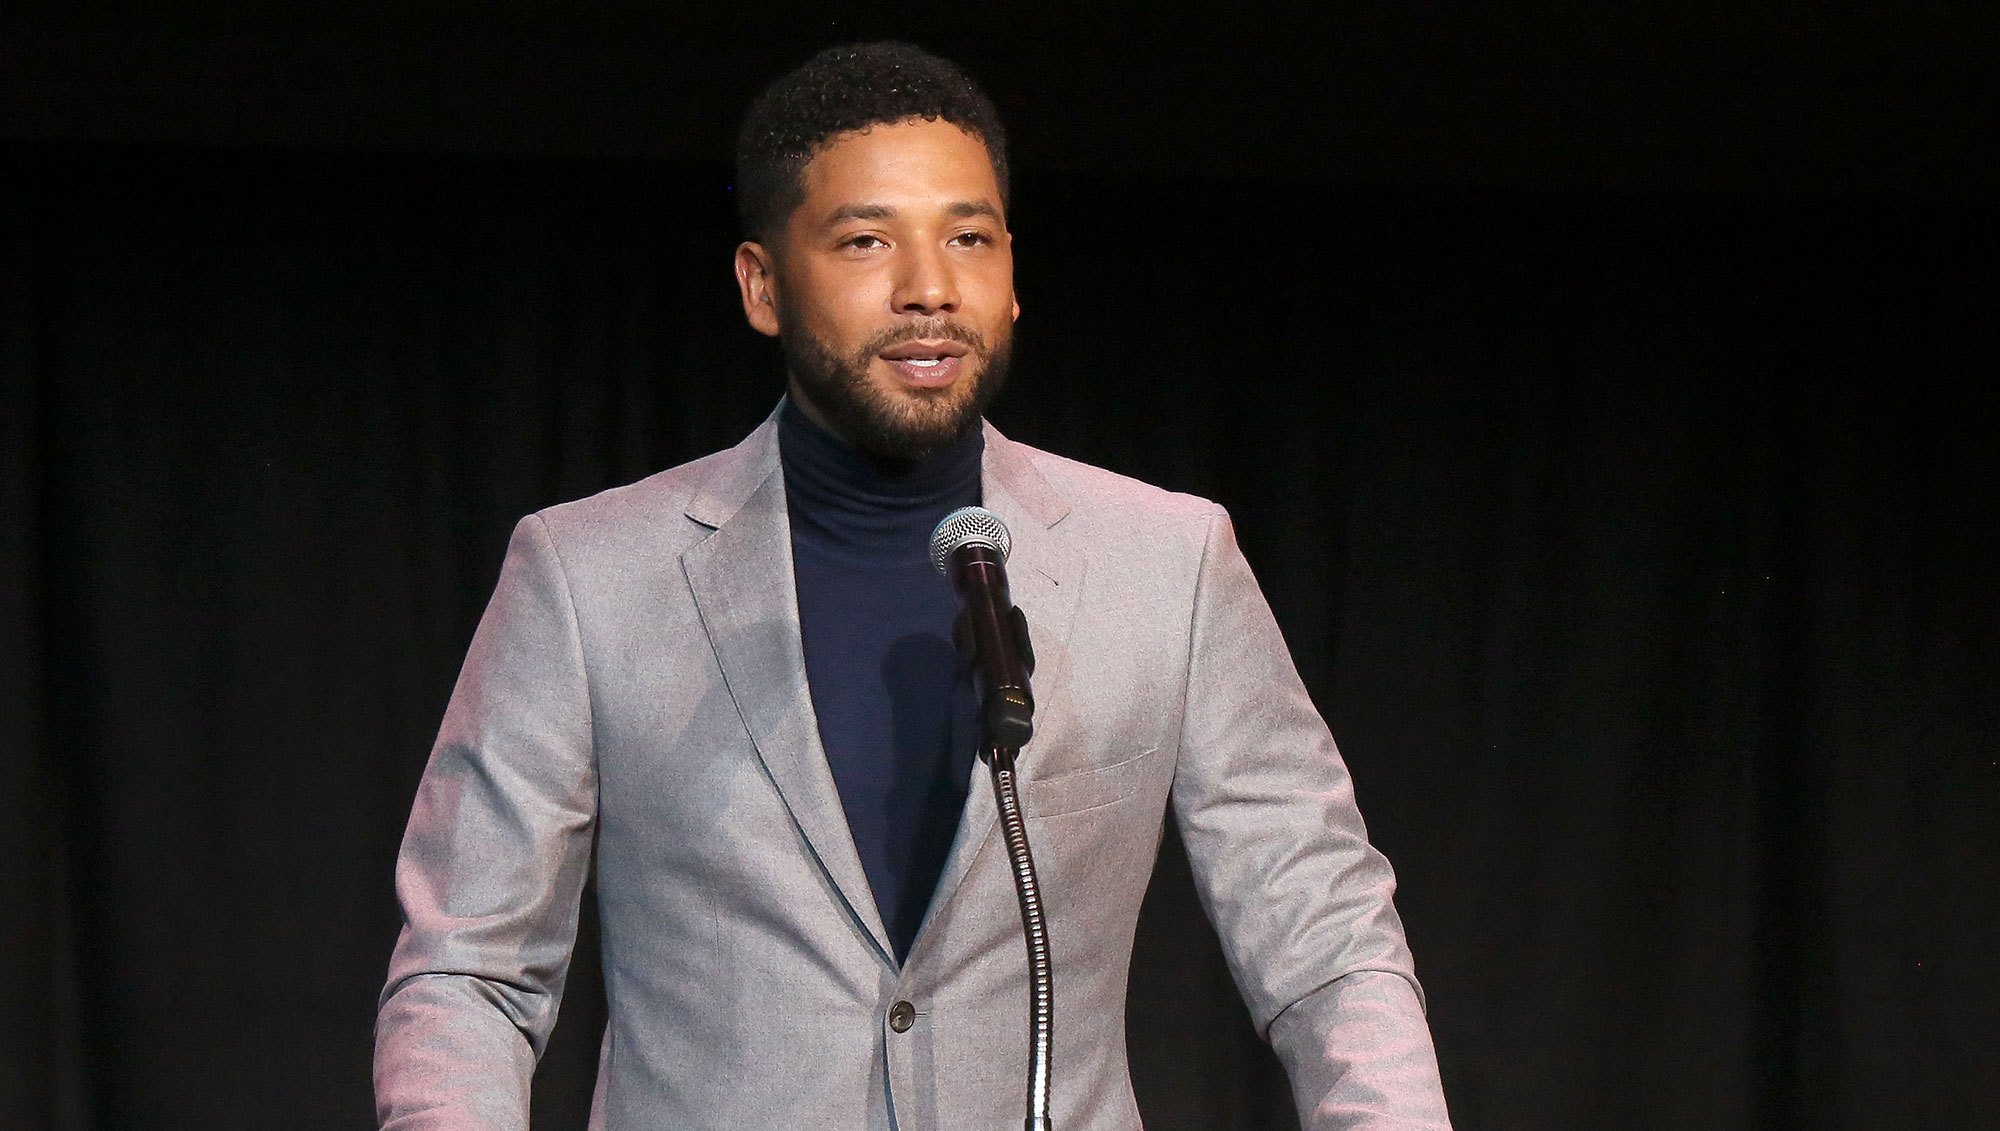 Jussie Smollett Speaks Out After Criminal Charges Are Dropped Against Him